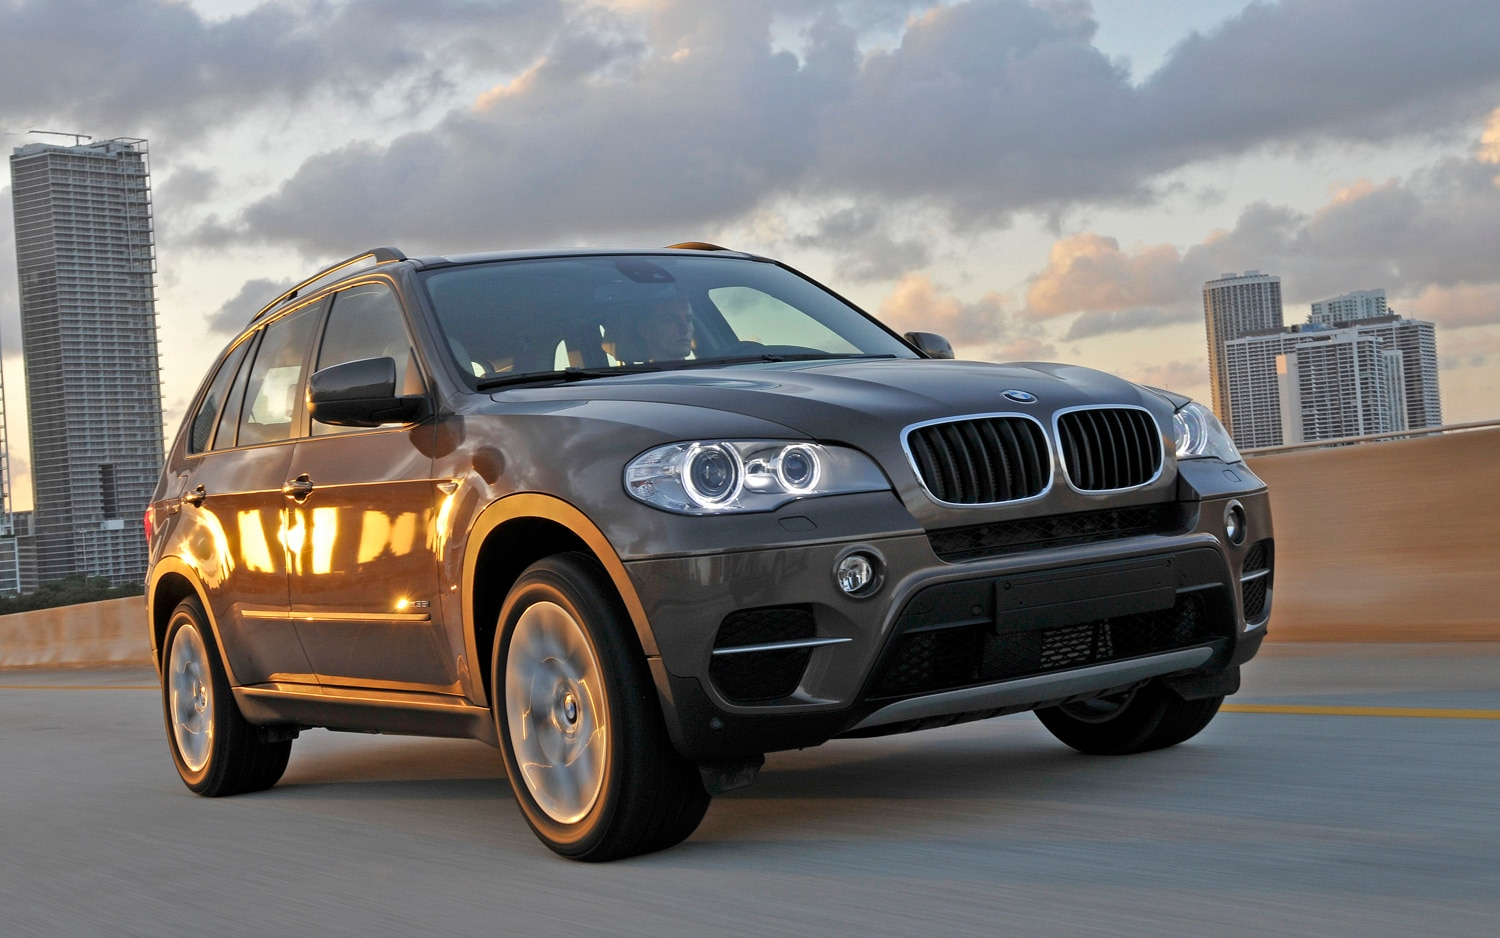 Recall Central: Aftermarket Acura TL Suspensions, 2012 BMW X5 ... on